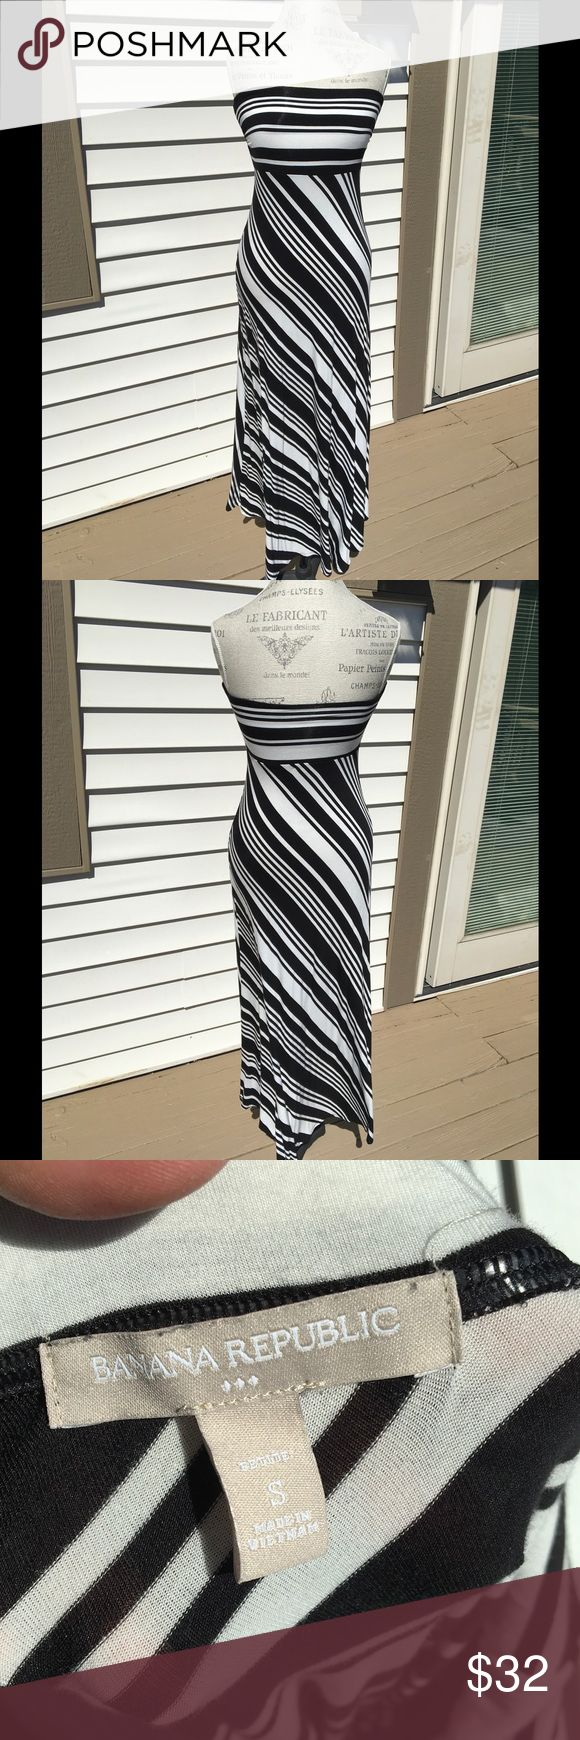 Black and white strapless dress Gorgeous, flattering diagonally stripped strapless dress. Very flowy and easy to wear. NWOT Banana Republic Dresses Strapless